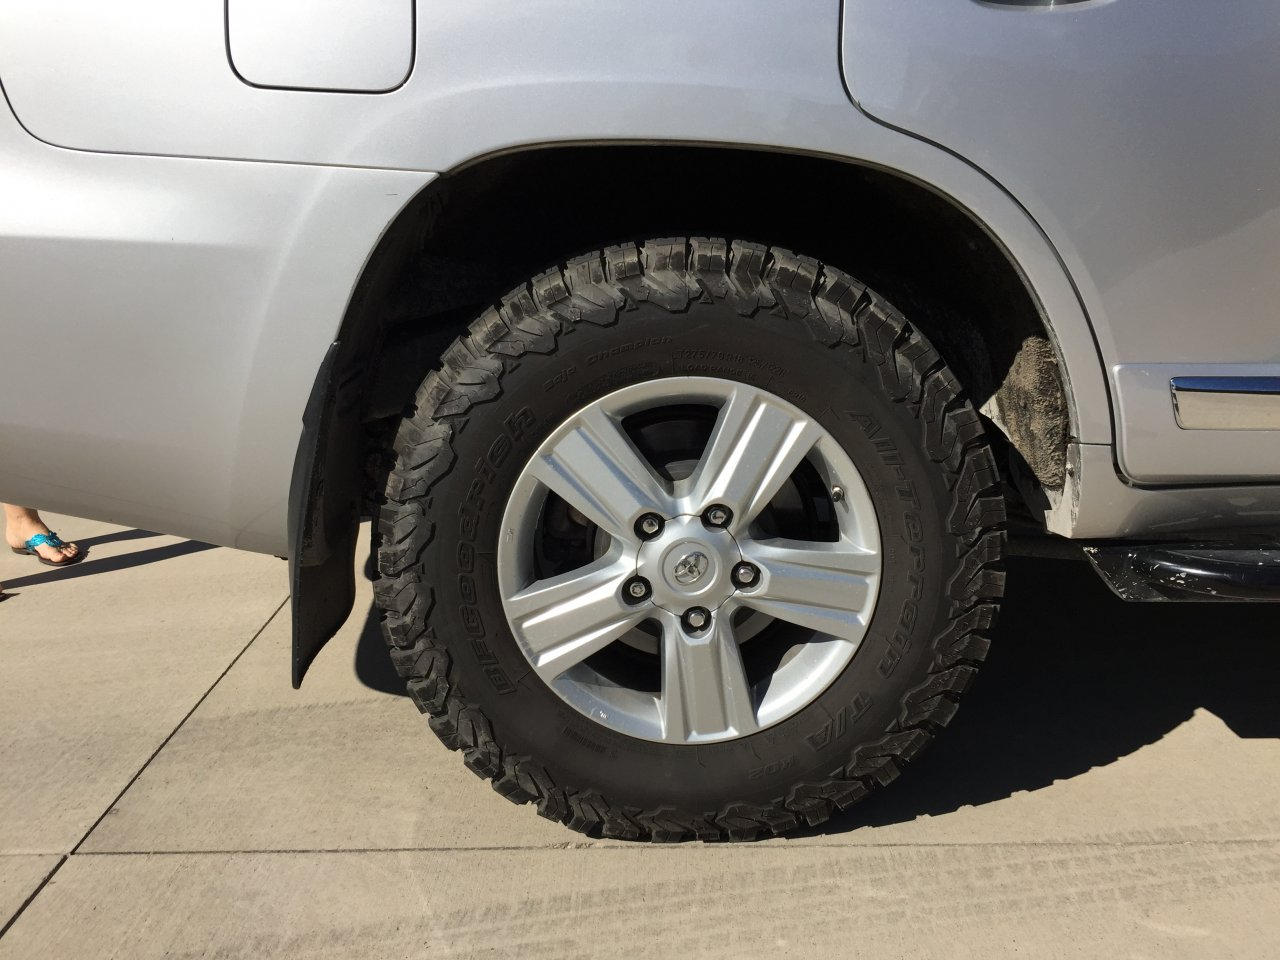 Would 33 Tires Fit In The Lc 200 Without A Suspension Lift Toyota Land Cruiser Kit Imagejpeg